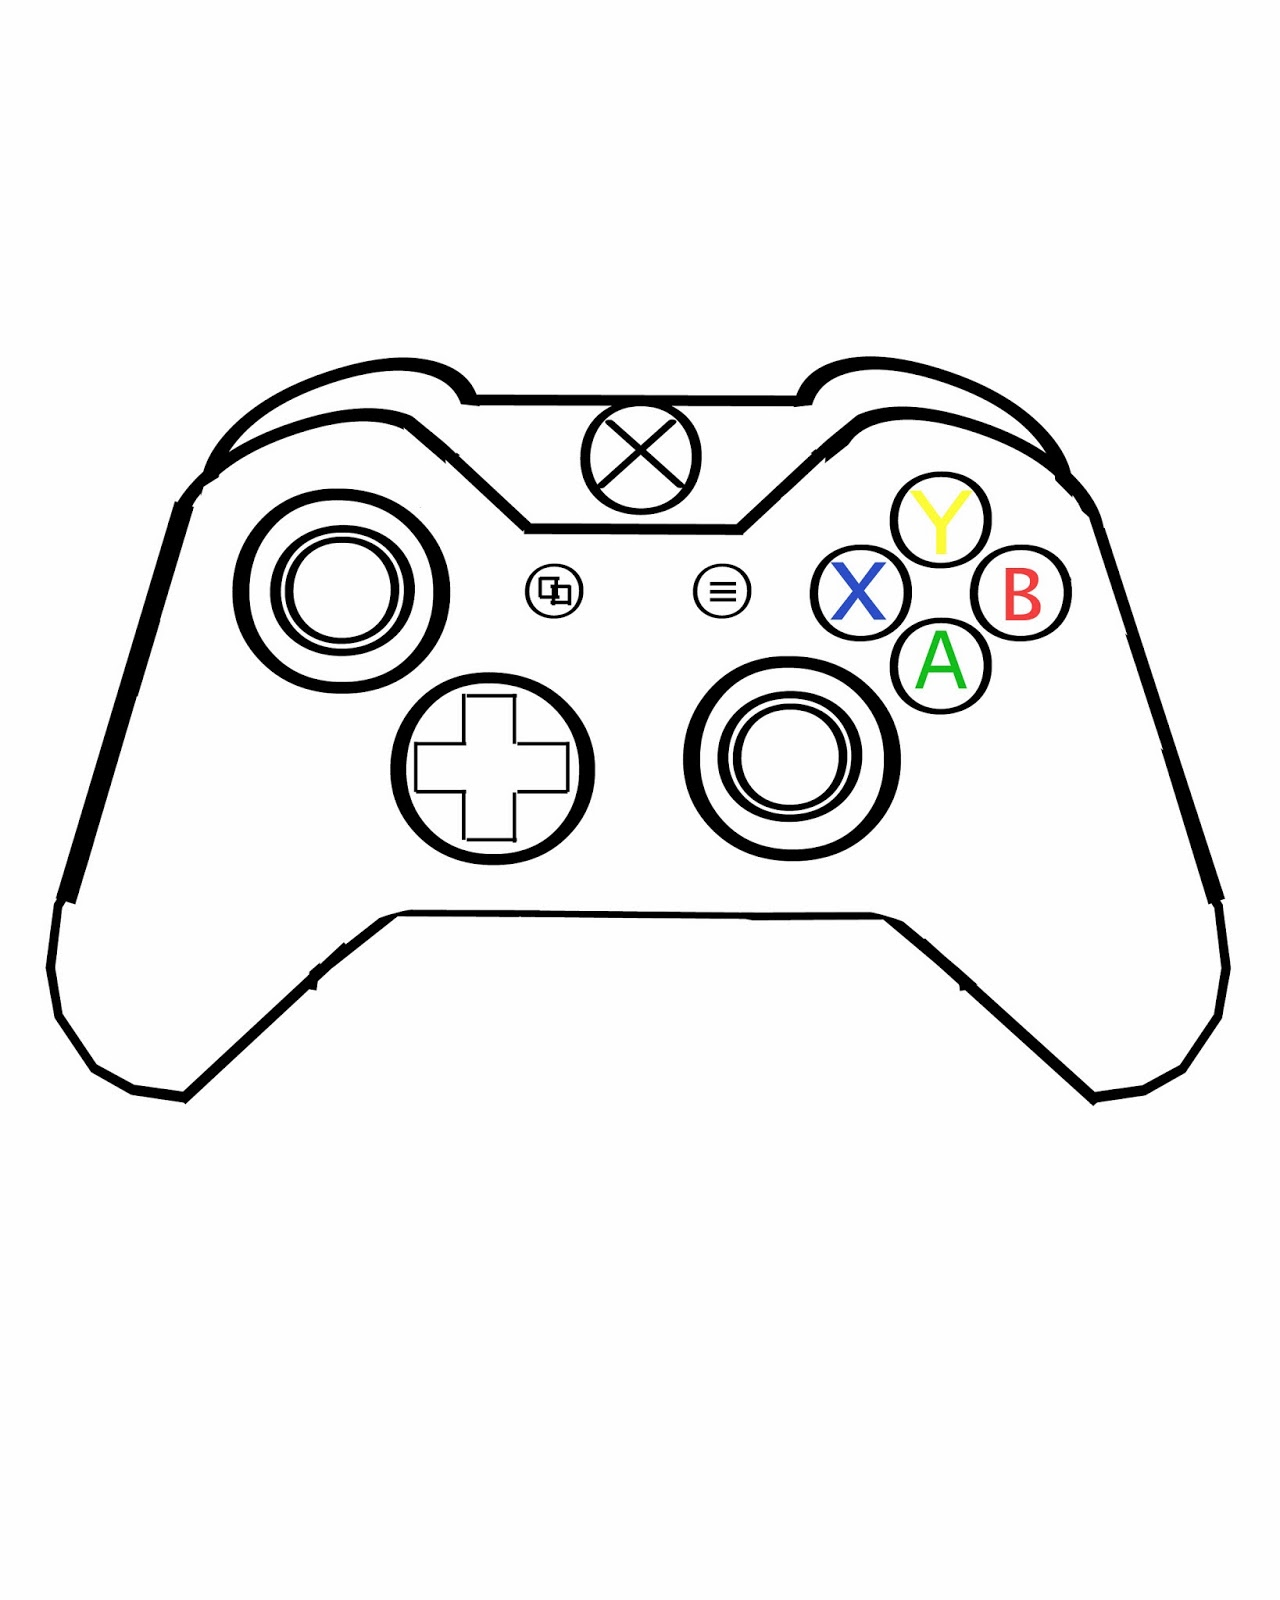 Contour Line Drawing Xbox One : Xbox controller line drawing wiring diagram fuse box